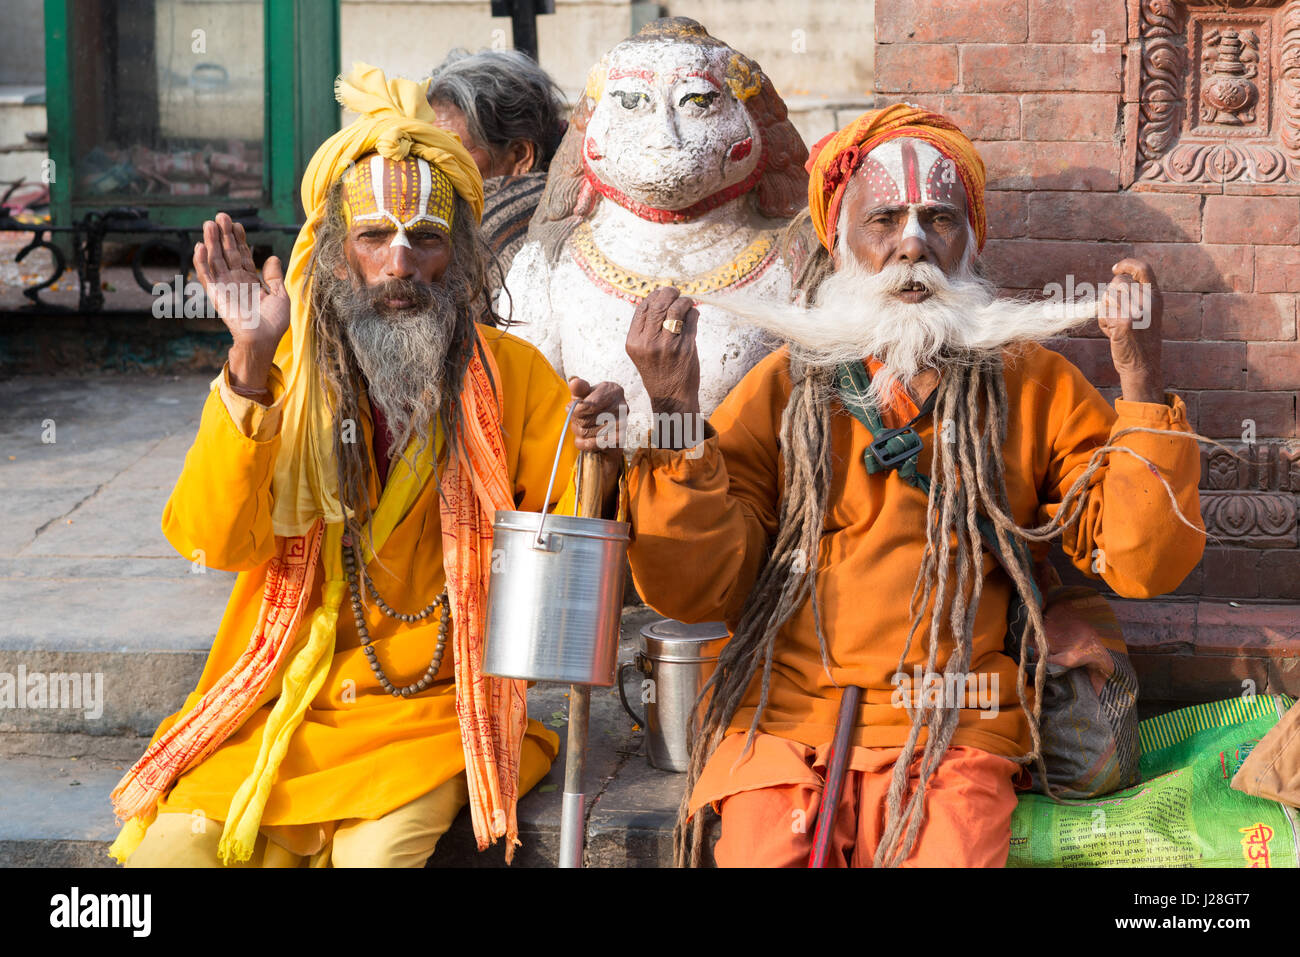 Nepal, Central Region, Kathmandu, Bearded Sadus at Durbar Square in Kathmandu Stock Photo